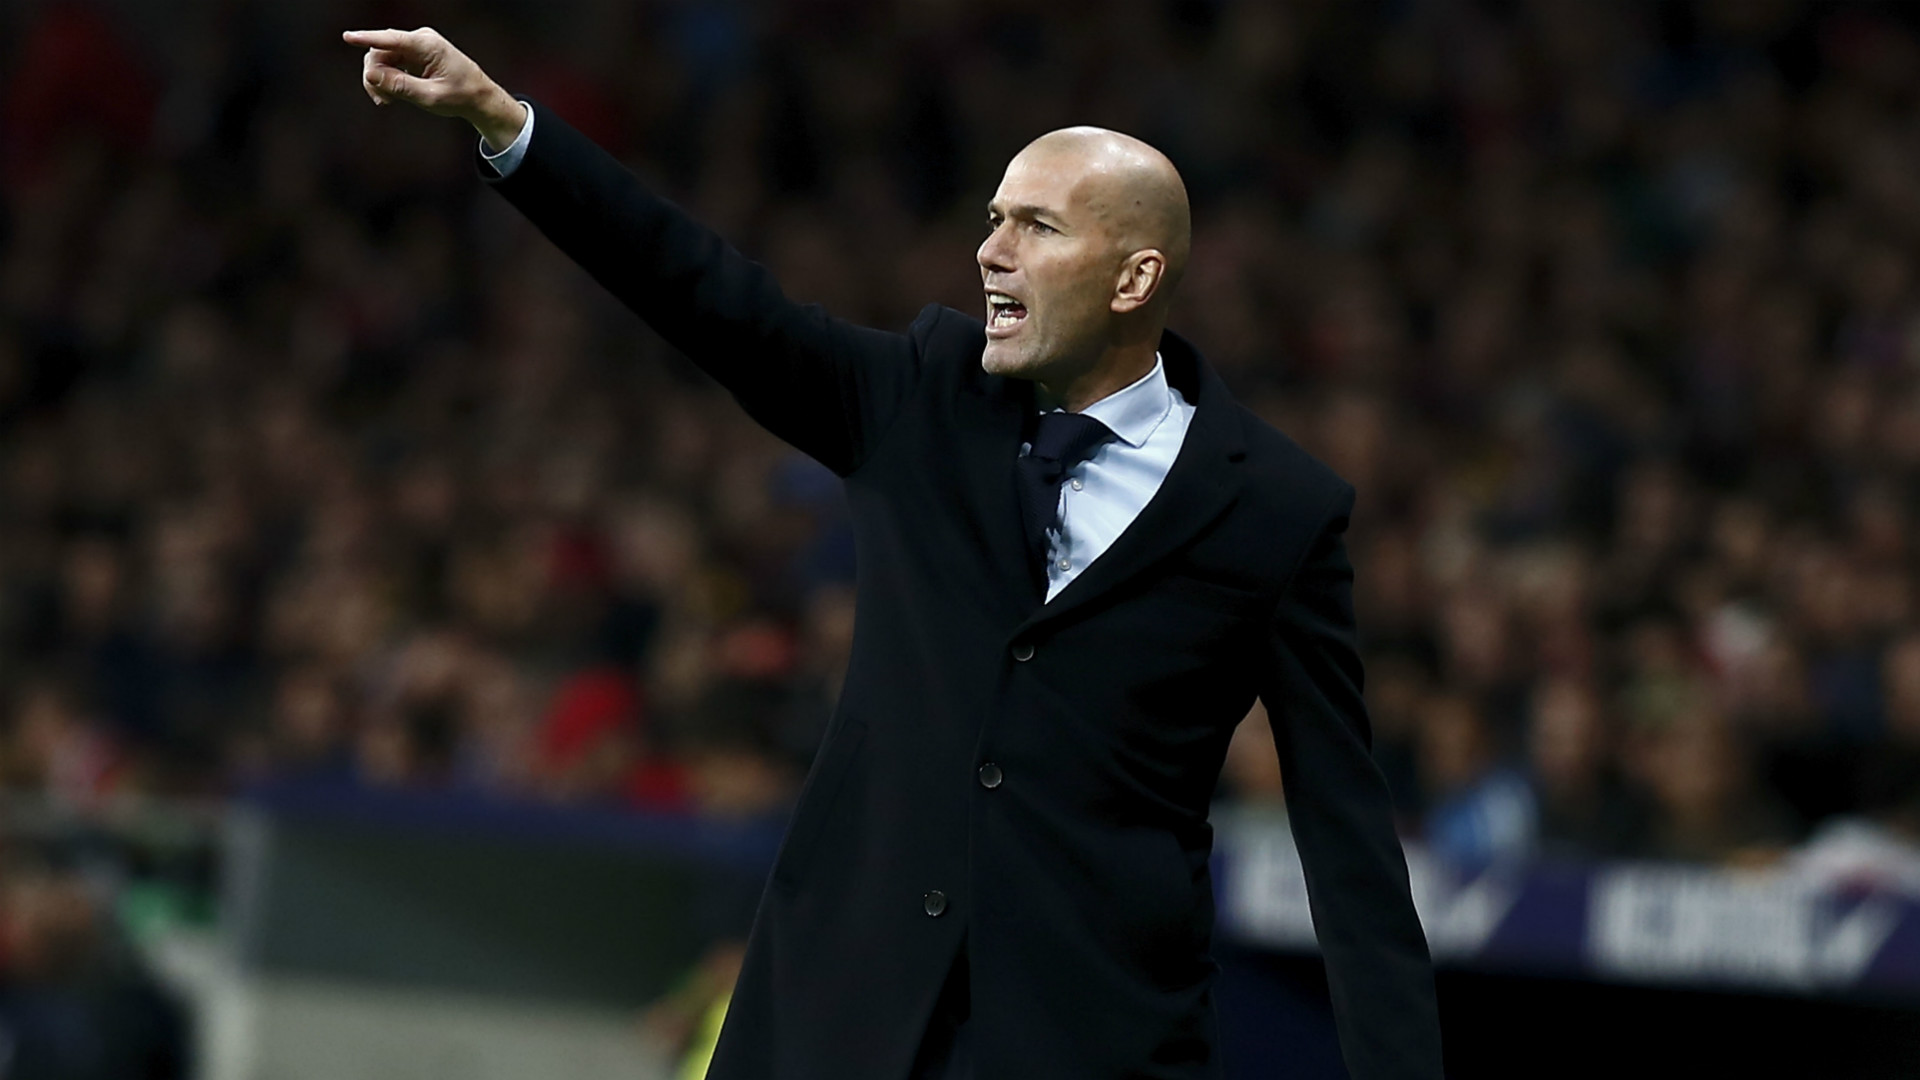 With words, Zidane tries to get Real Madrid back on track